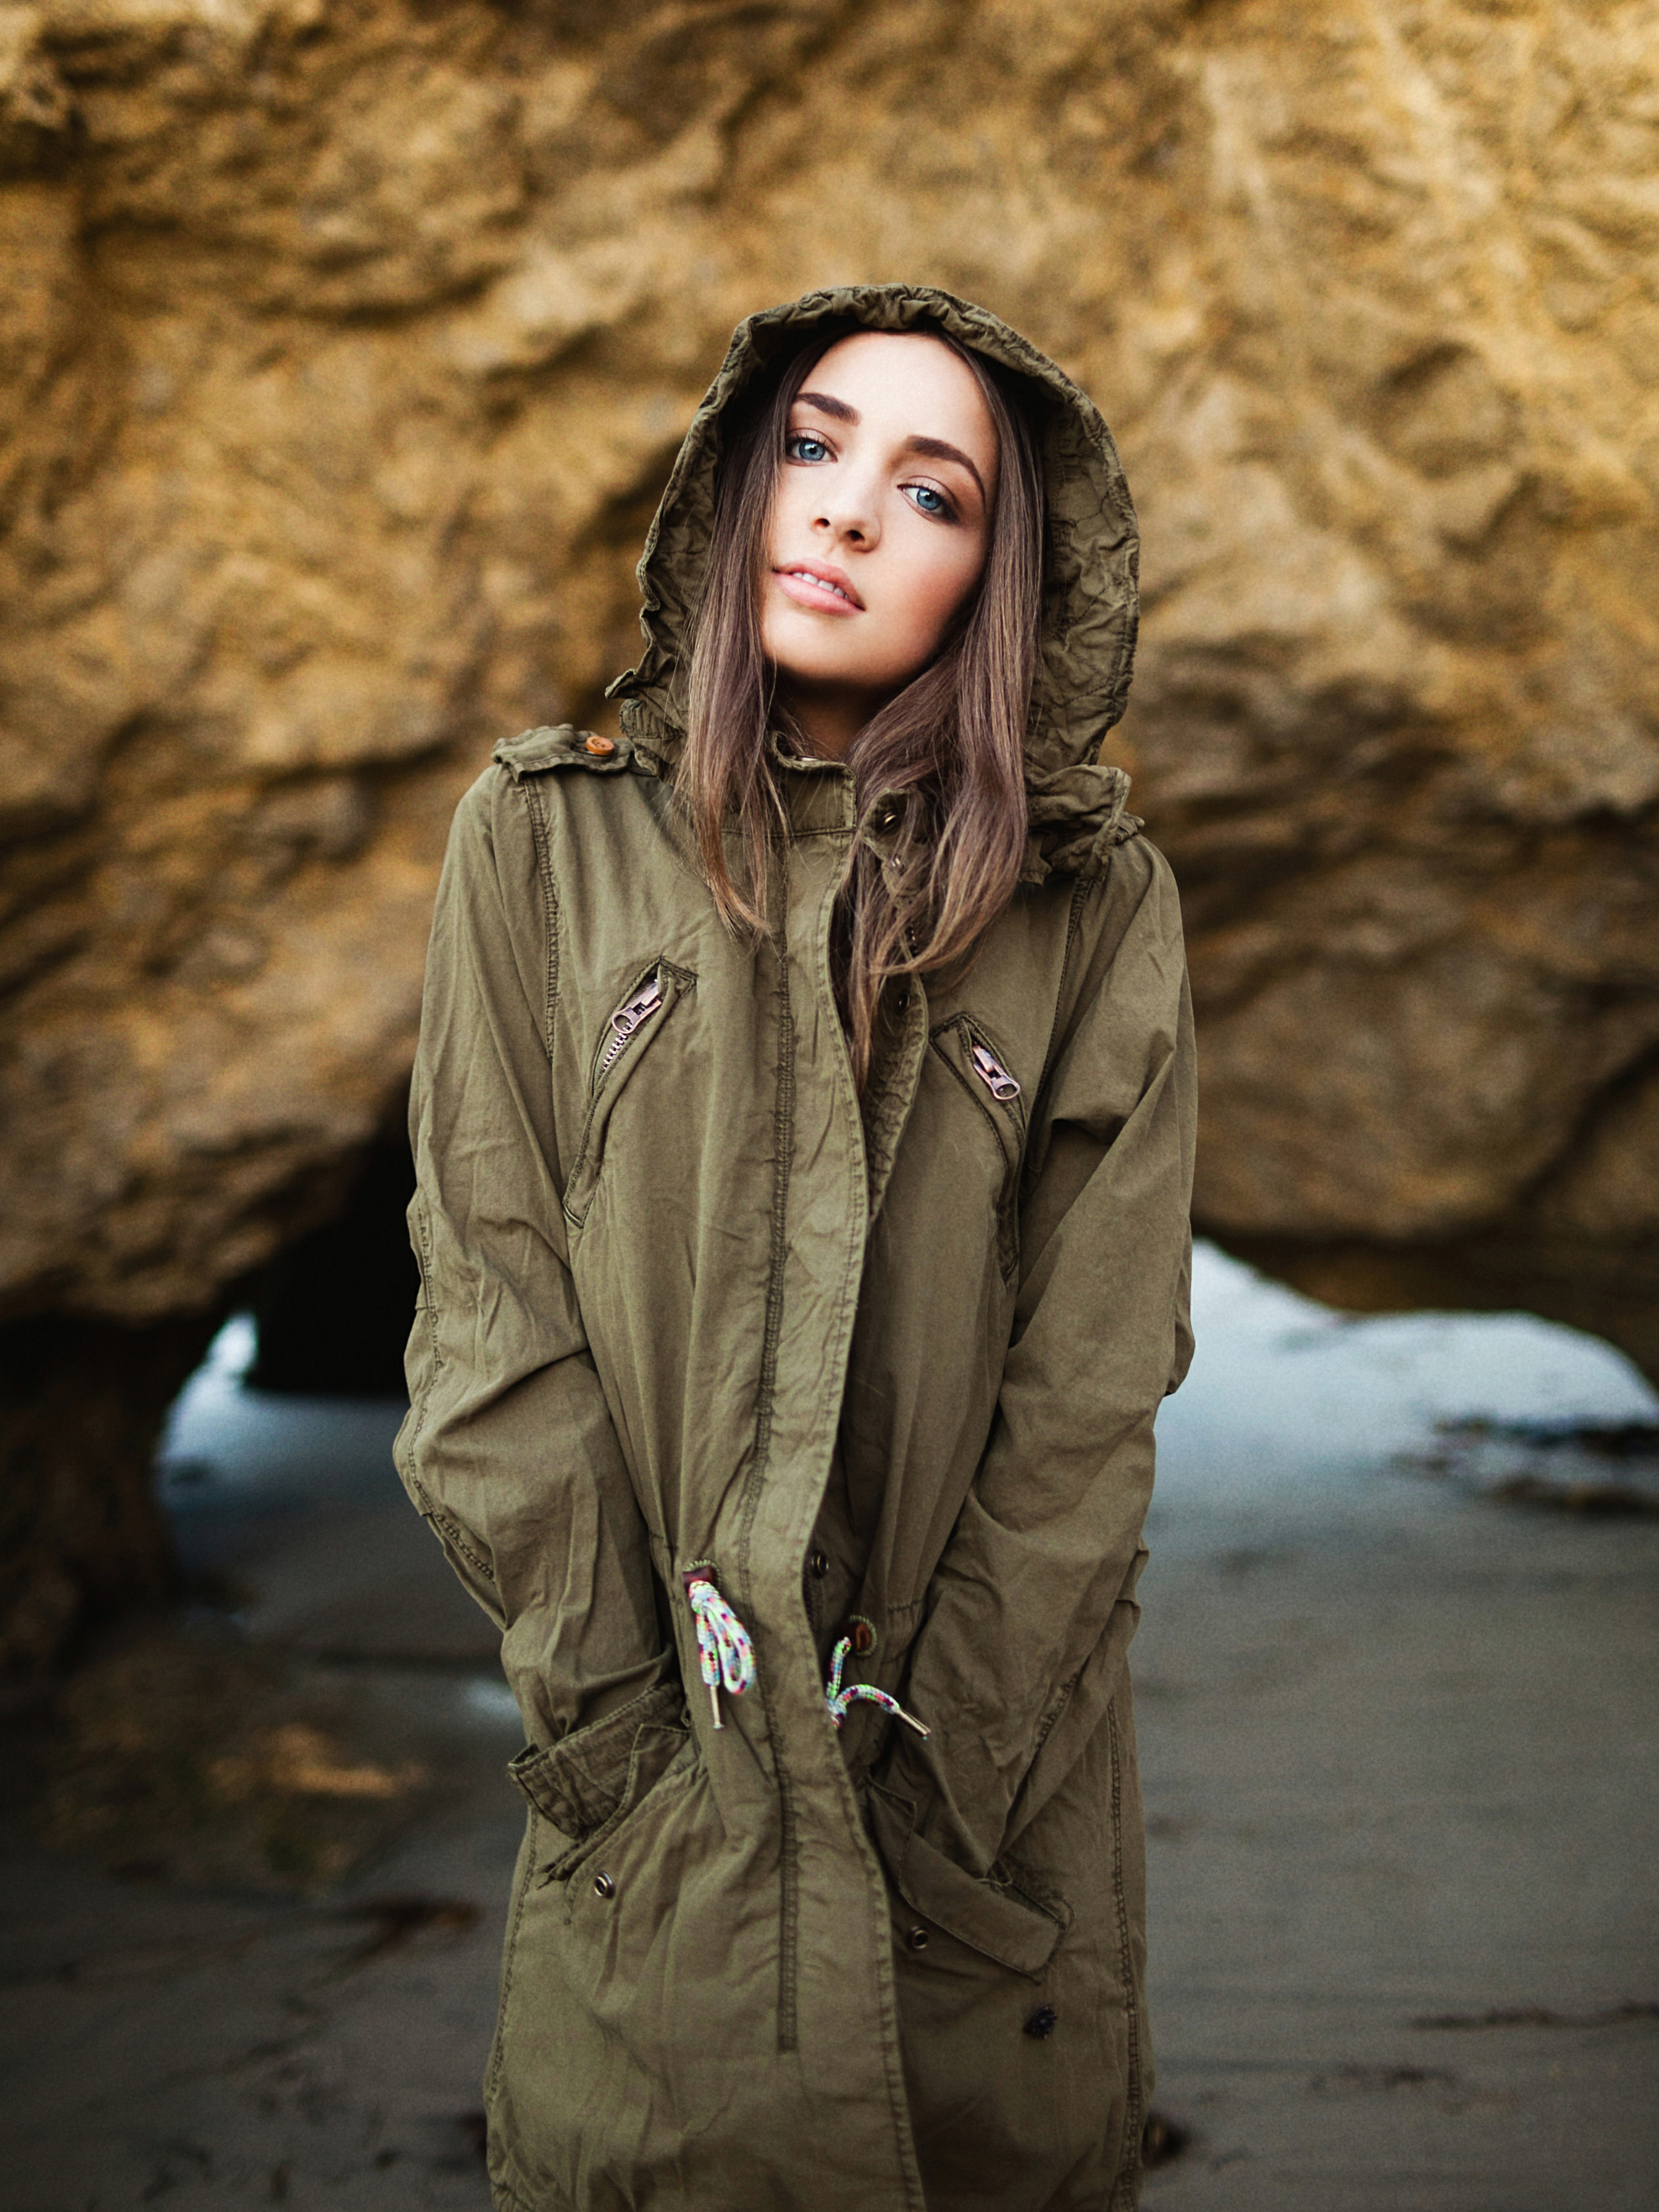 5D III + 50L  During this shoot in Malibu I'm assuming that wearing this coat that's clearly more at home in the PNW attracted those overcast skies that typically stick around up there too. I was planning on shooting pretty heavily backlit but to avoid any dark, muddy skin tones (that typically show up in the shadows when it's overcast) I had Madison face the direction of the light and I had her tilt her head up a bit so it hit her at a more flattering angle. Shooting her in front of a darker backgroundalso helped her pop out of the frame in a scene where the light was all pretty flat.